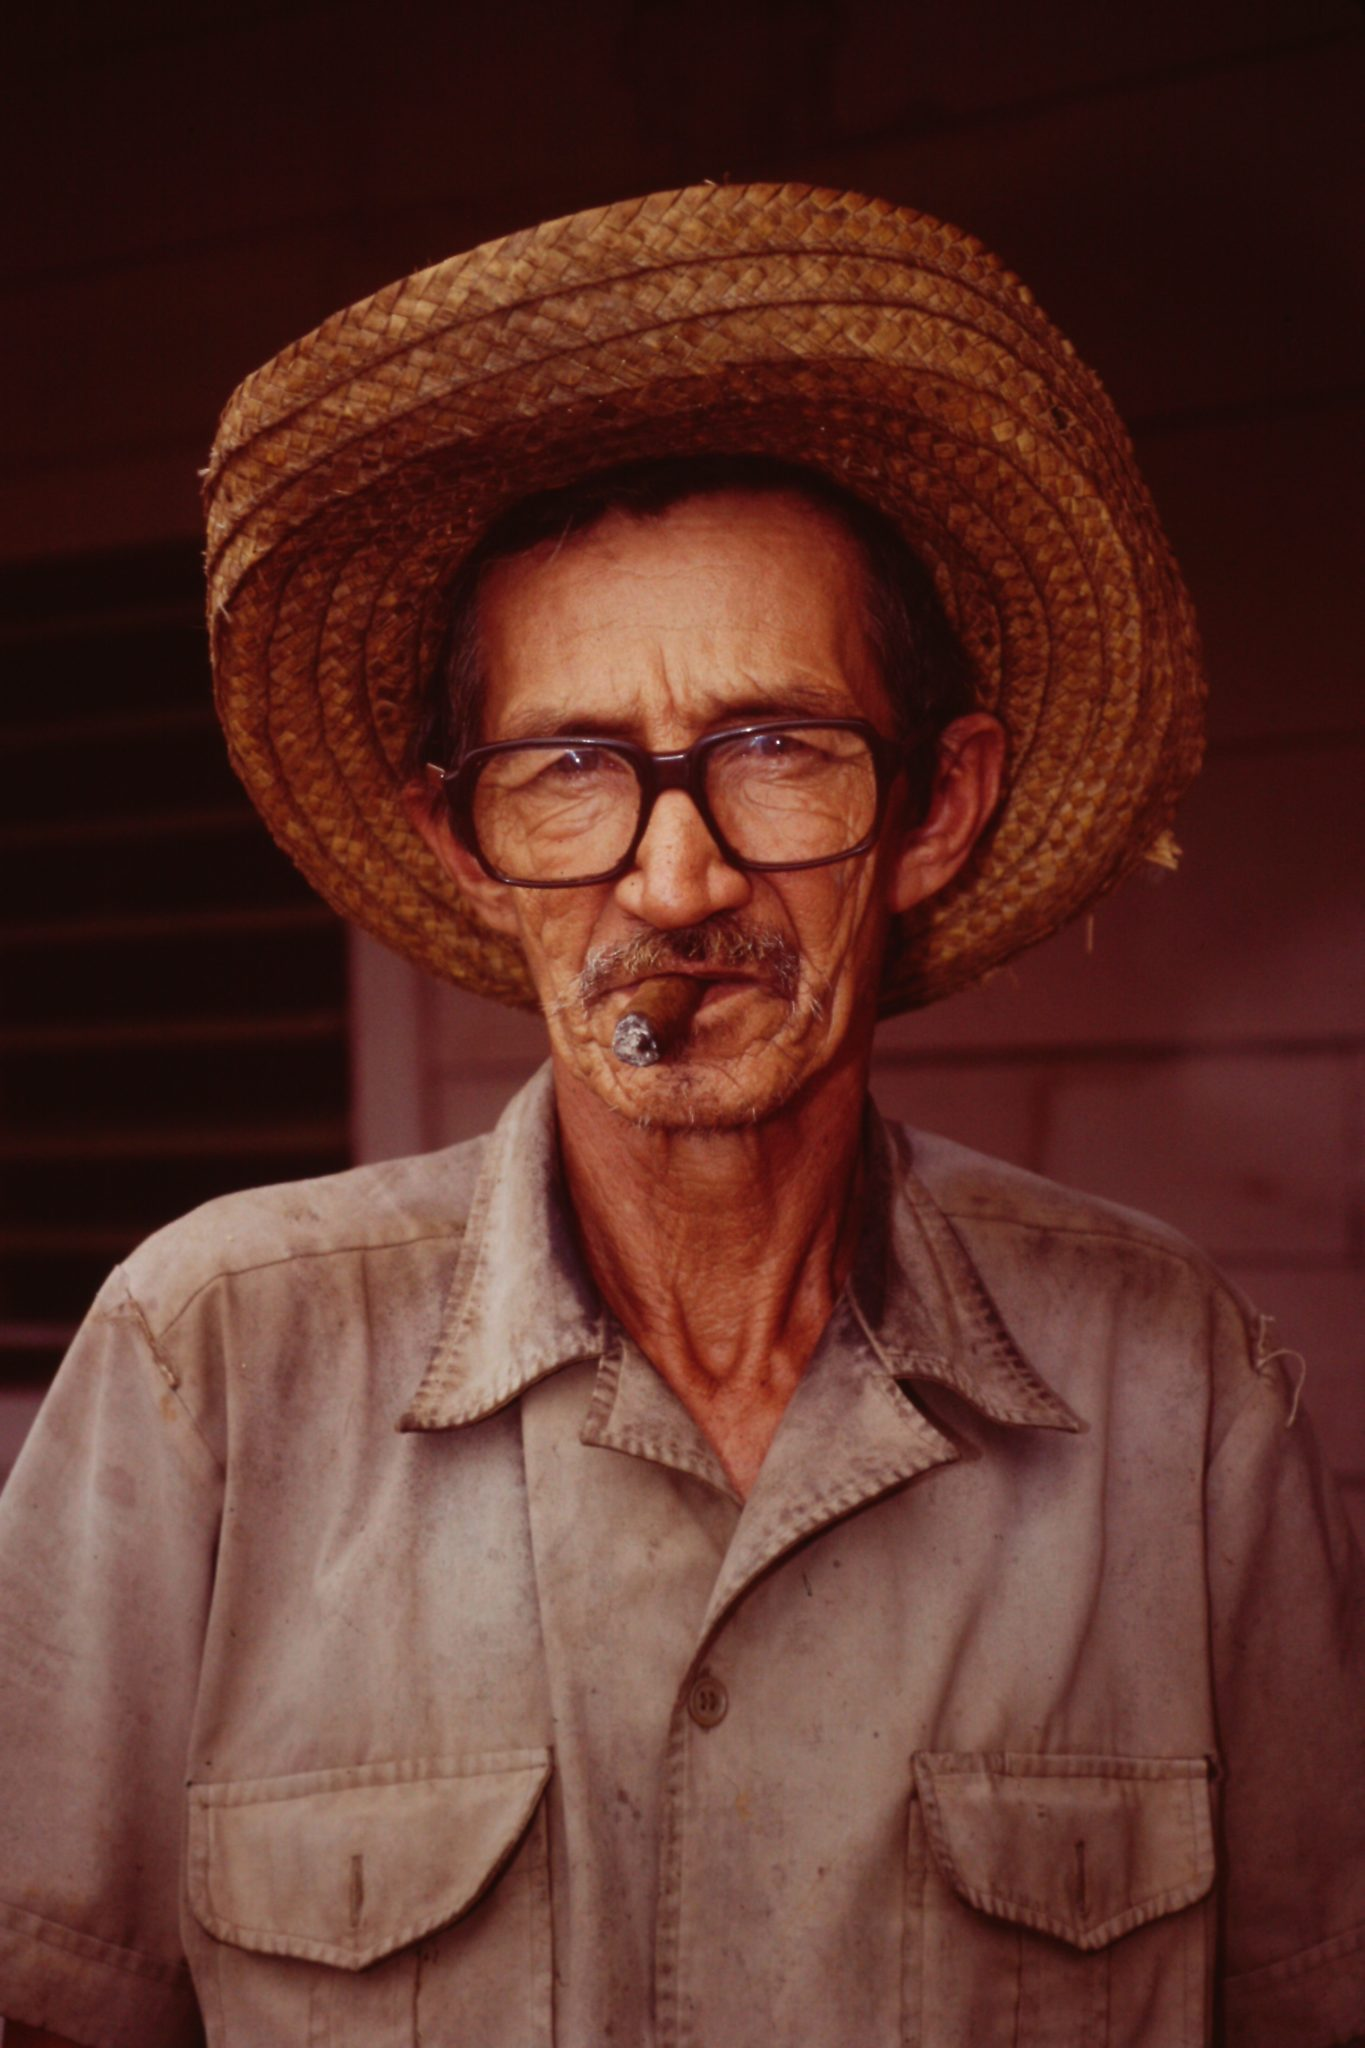 A photo of Miguel Toledo Rodriguez in 1996 captures the essence of a hardworking Cuban farmer.